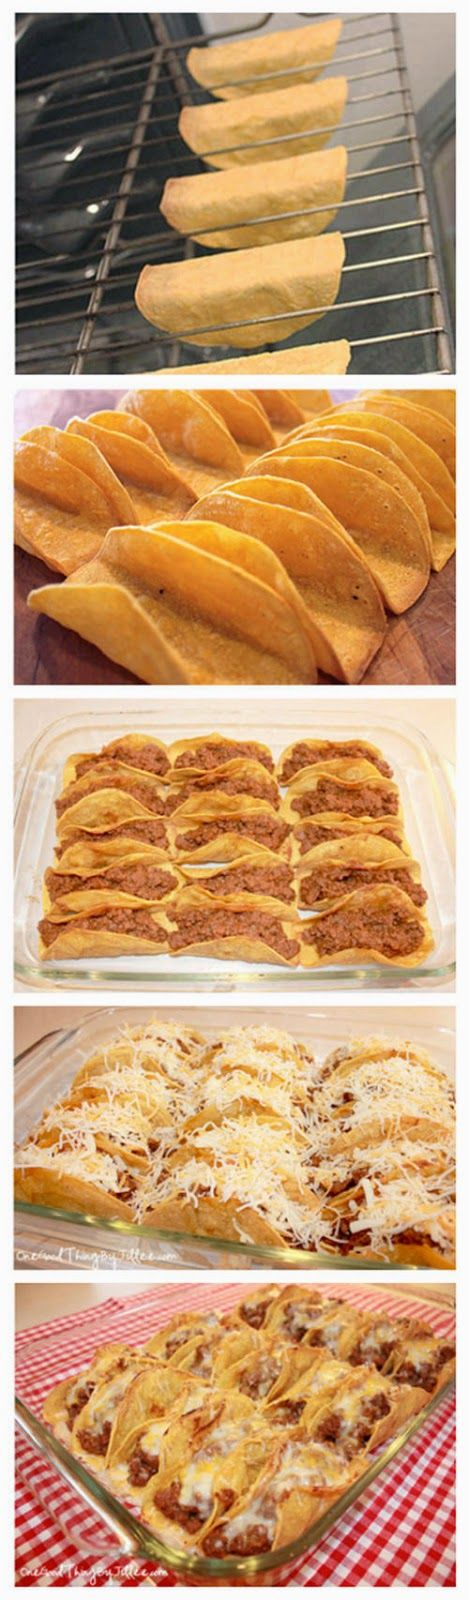 Baked Taco Shells Ingredients: 2 lbs ground beef 1 can refried beans 15 ounce tomato sauce 1 pkg taco seasoning or 2 – 3 Tablespoons of homemade taco seasoning) 1 – 2 cups shredded cheese (I didn't...